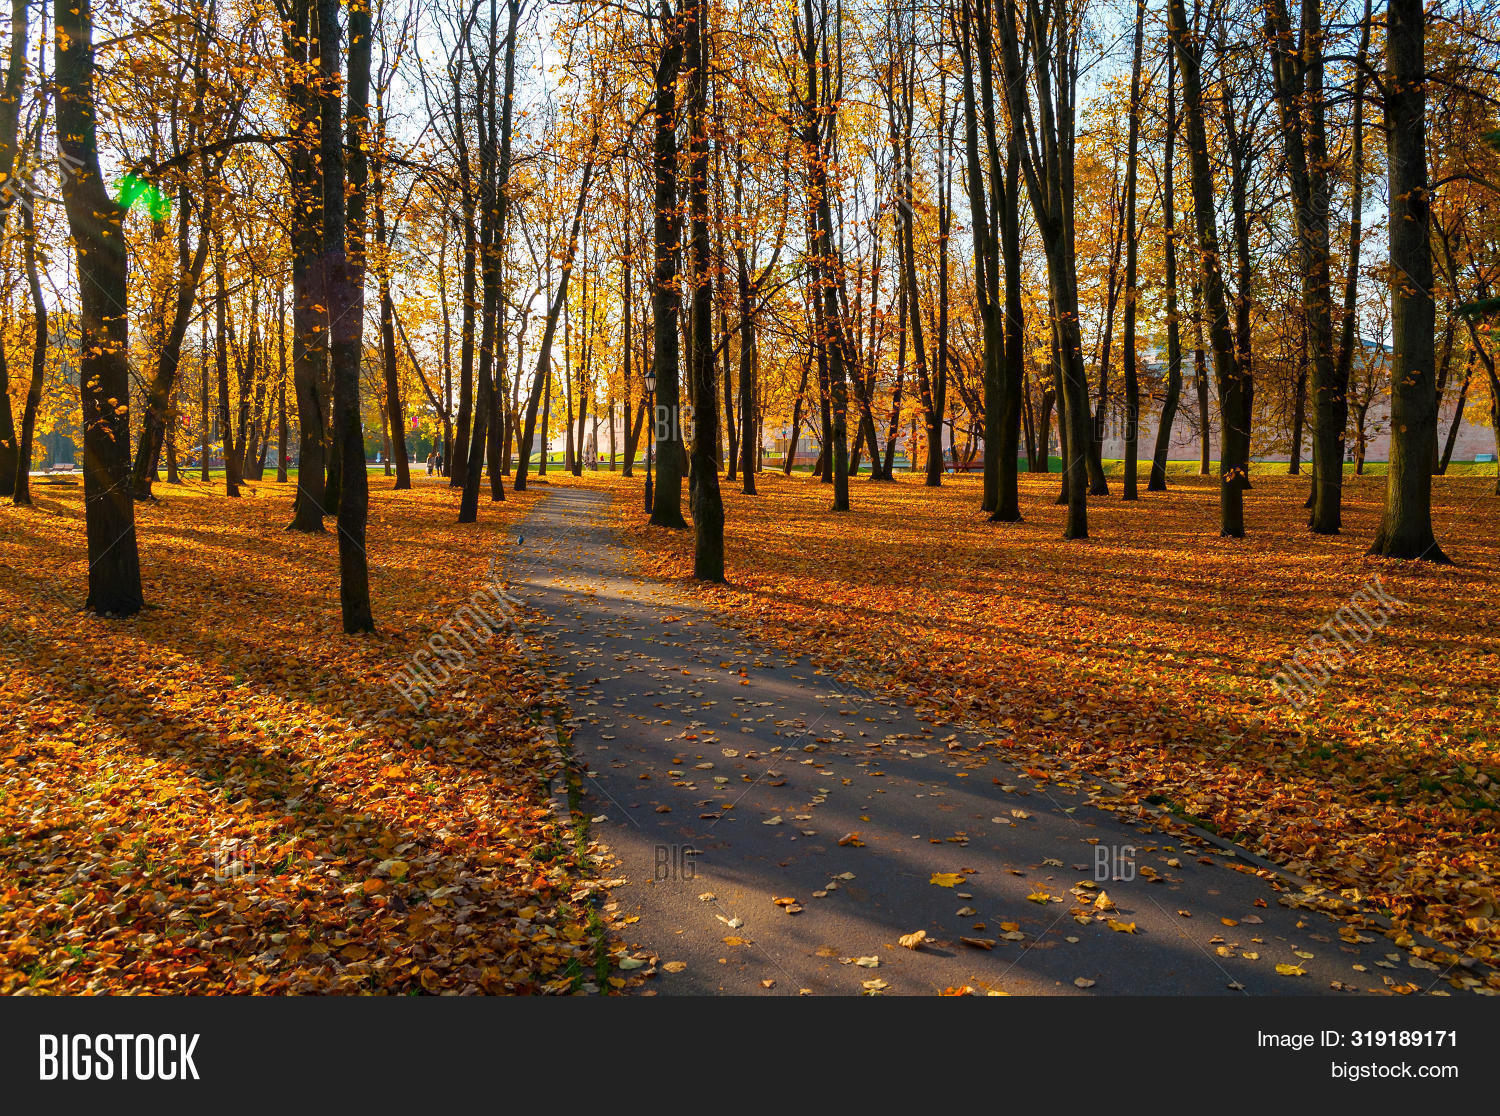 November,fall-October,fall-September,fall-alley,fall-autumn,fall-beautiful,birch,bright,fall-city,cloudy,day,dry,fall,fallen,focus,fall-foliage,footpath,fall-foreground,fall-forest,gold,fall-grove,fall-landscape,fall-leaves,lonely,fall-nature,fall-panorama,fall-park,path,processing,quiet,fall-red,fall-road,fall-row,russian,scene,season,soft,stunning,fall-tree,fall-view,fall-wallpaper,weather,yellow,yellowed